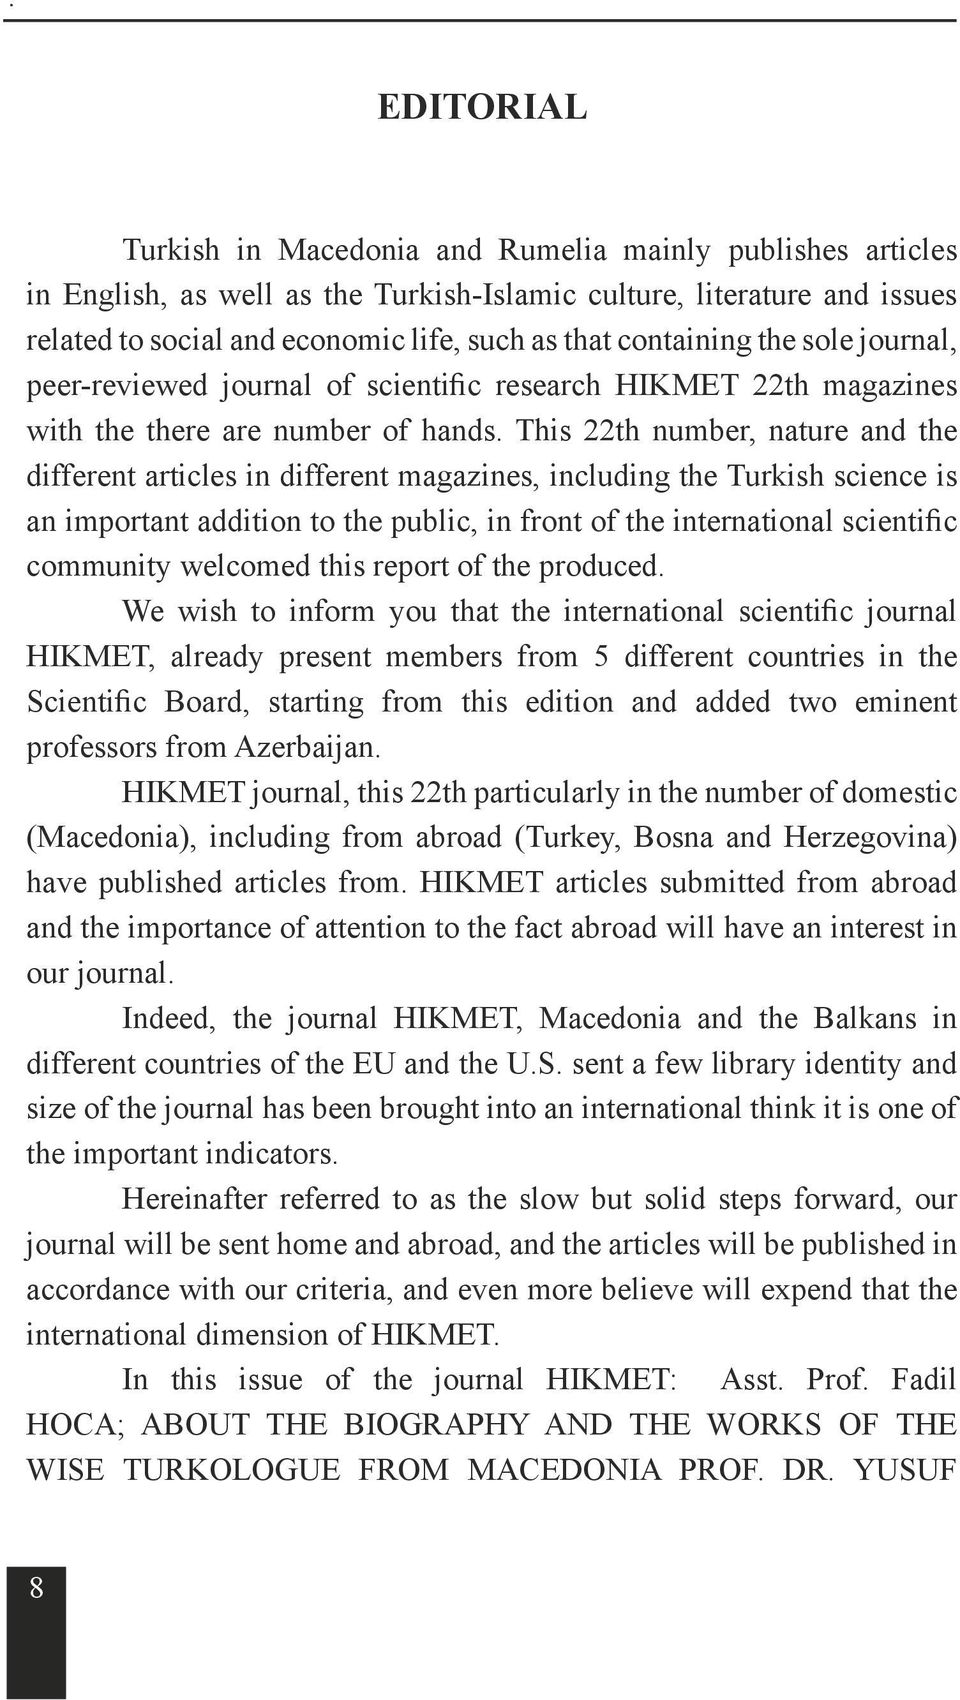 This 22th number, nature and the different articles in different magazines, including the Turkish science is an important addition to the public, in front of the international scientific community